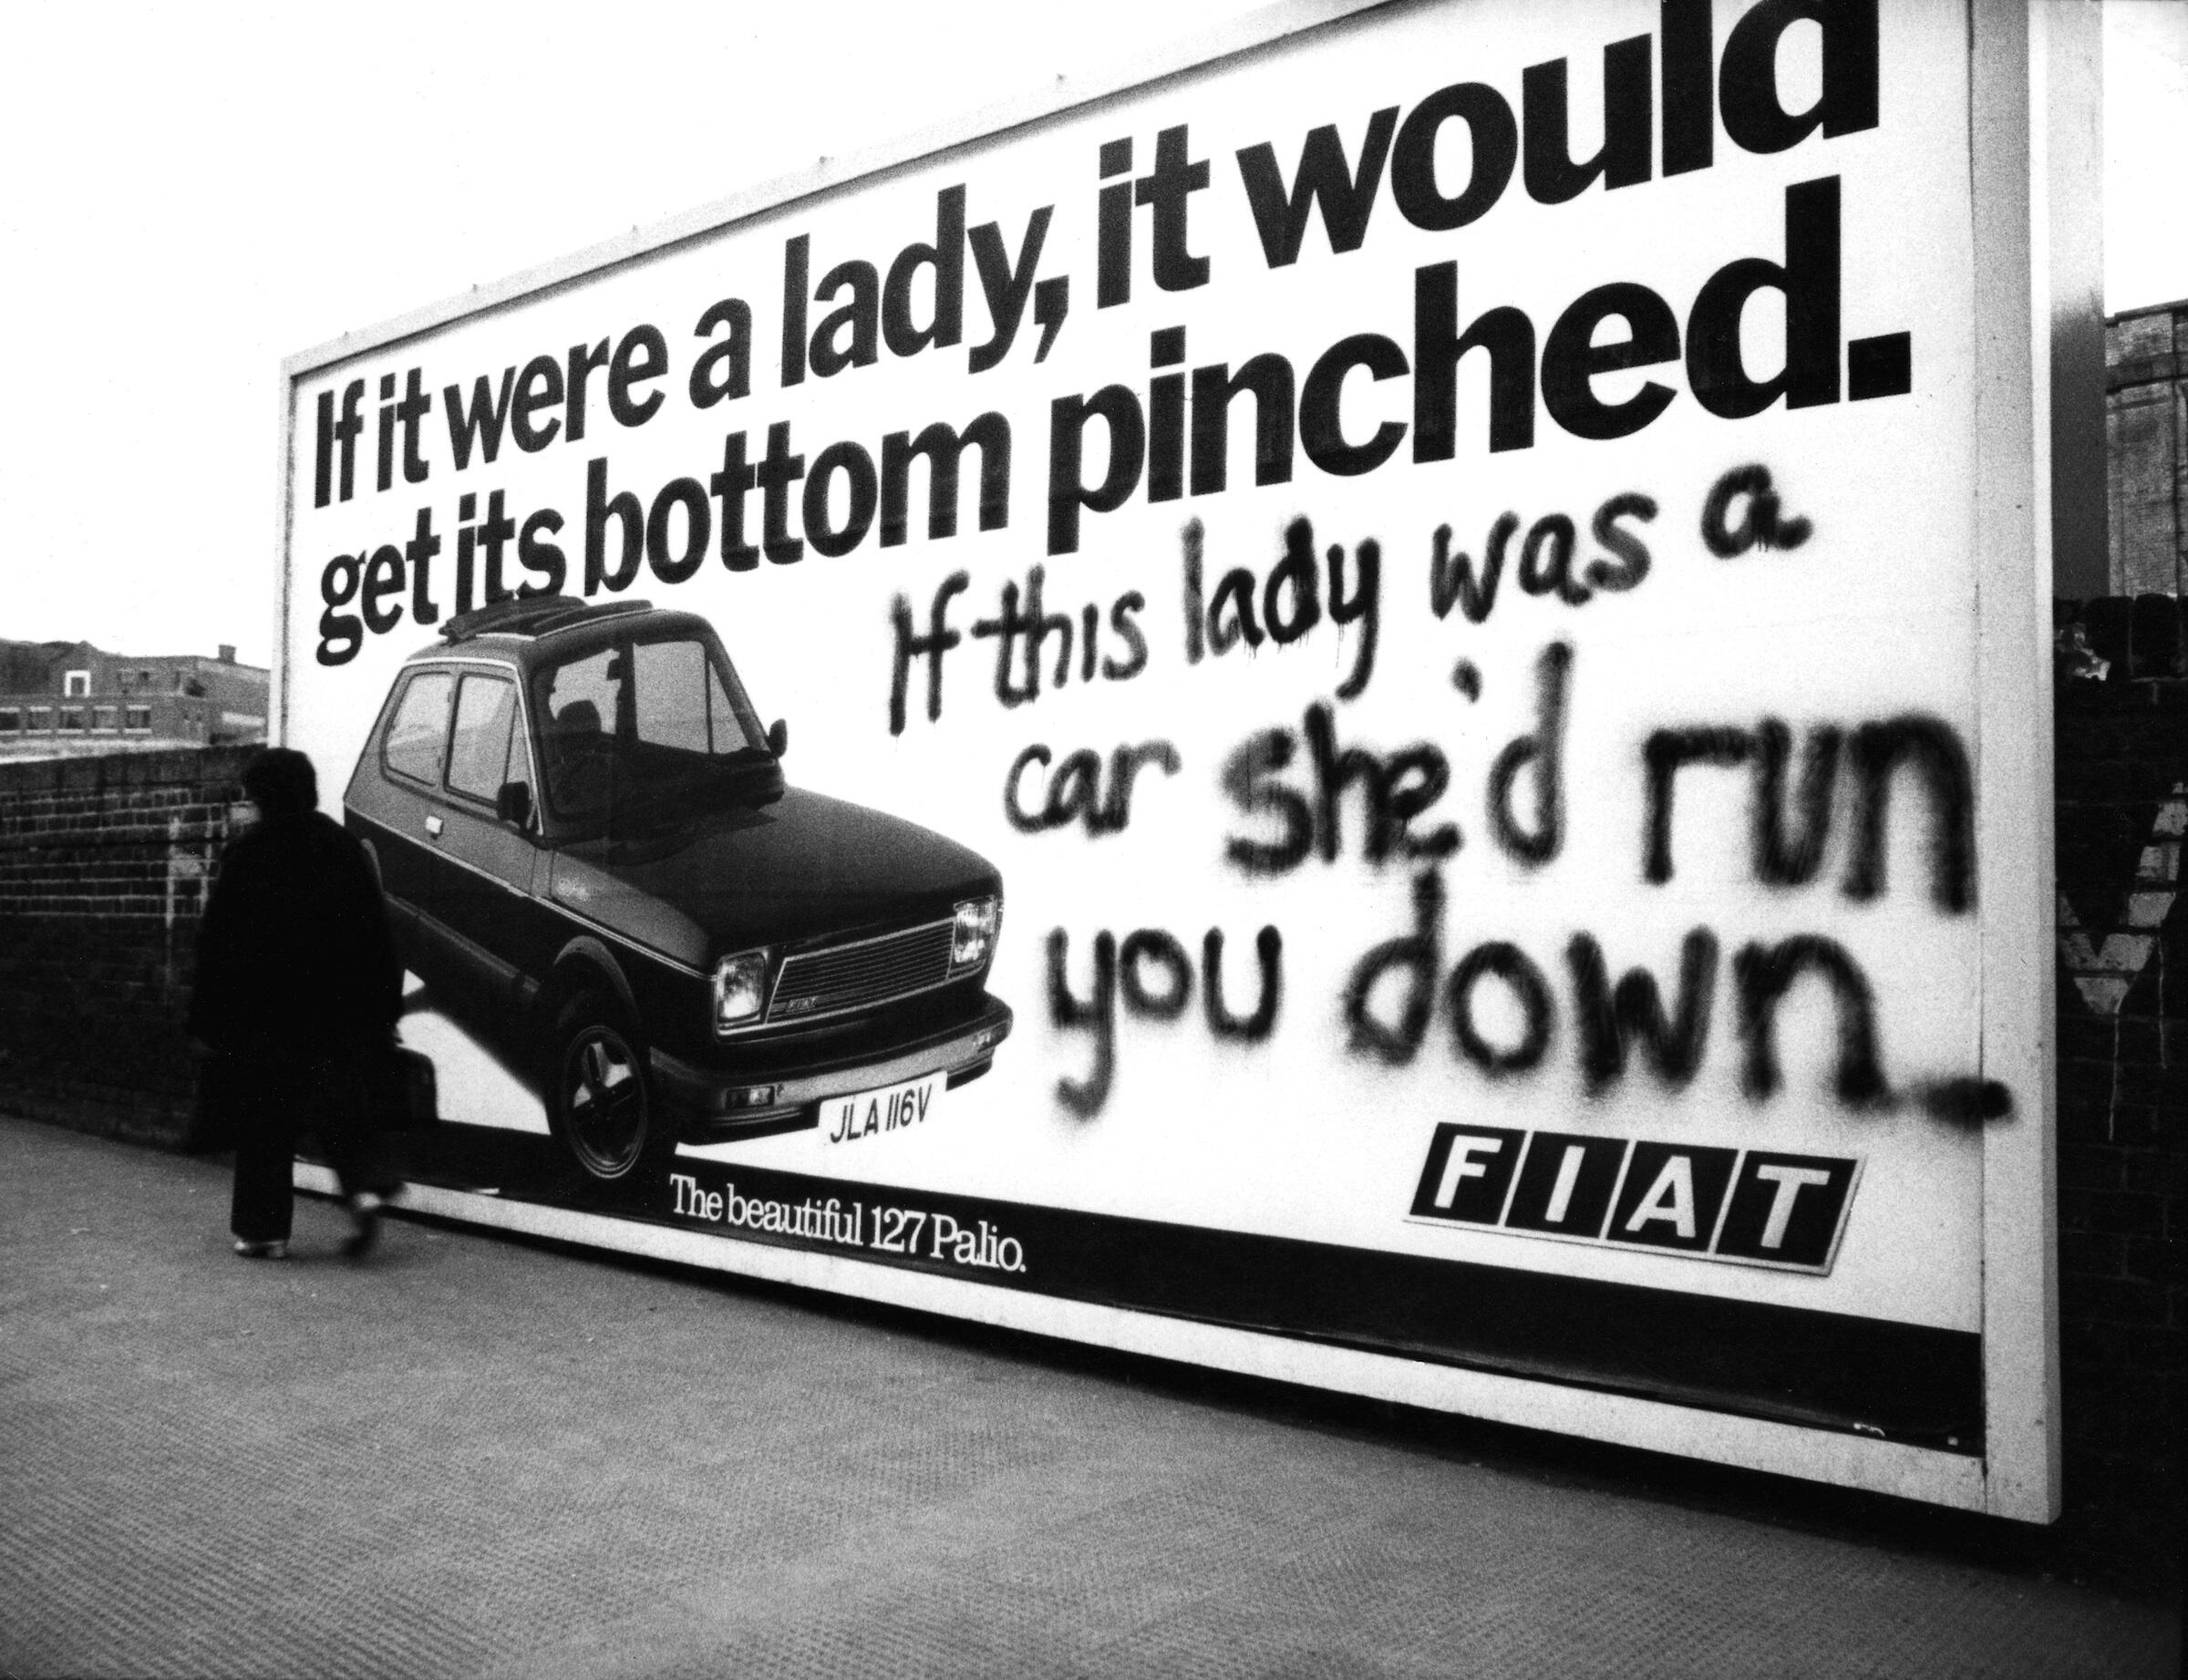 A billboard advert for a Fiat 127 Palio, featuring an image of the car in the bottom left corner and the slogan 'If it were a lady, it would get its bottom pinched.' Beneath this, someone has spray-painted 'If this lady was a car she'd run you down.'